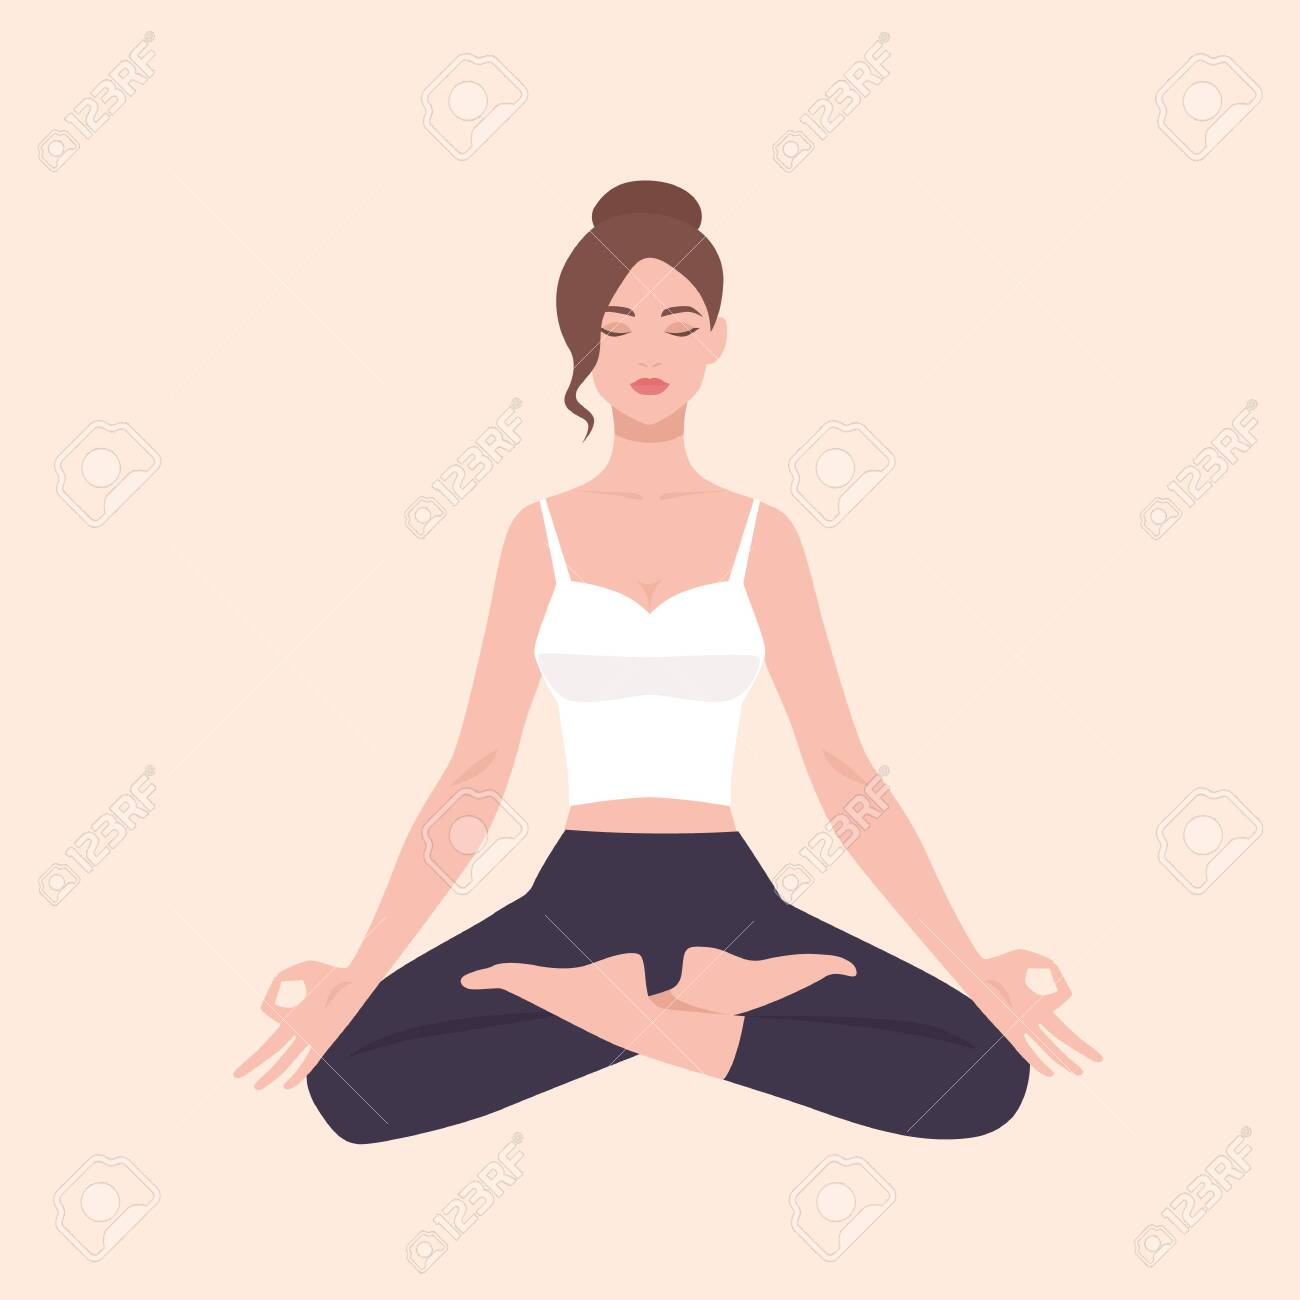 Young Pretty Woman Performing Yoga Exercise Female Cartoon Character Royalty Free Cliparts Vectors And Stock Illustration Image 123249596